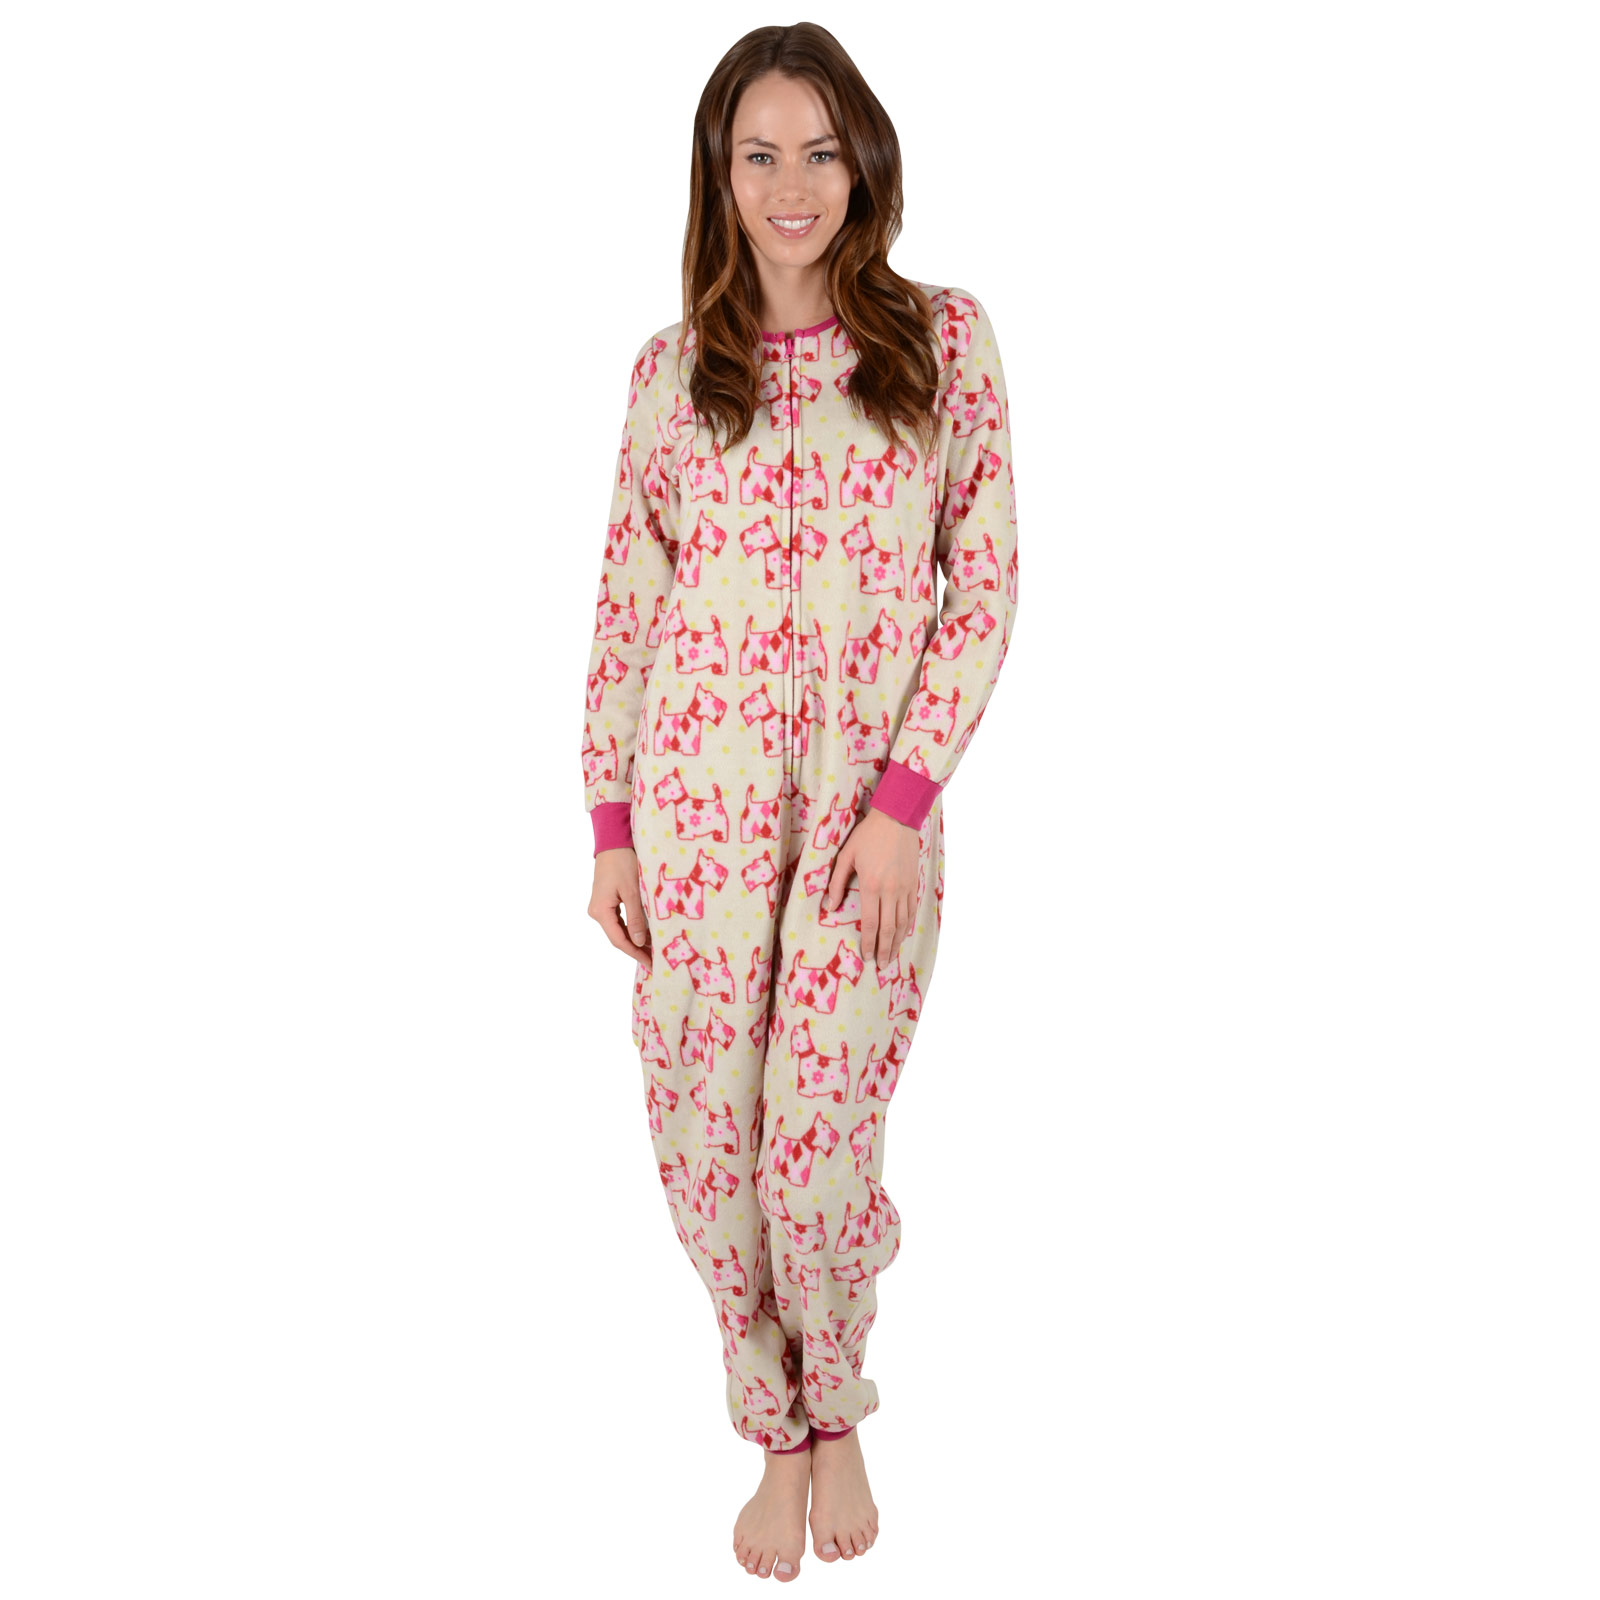 Staying in bed? That's the perfect time to wear your loudest, proudest Lady Pajamas. Our extensive collection of Lady Pajamas in a wide variety of styles allow you to wear your passion around the house.